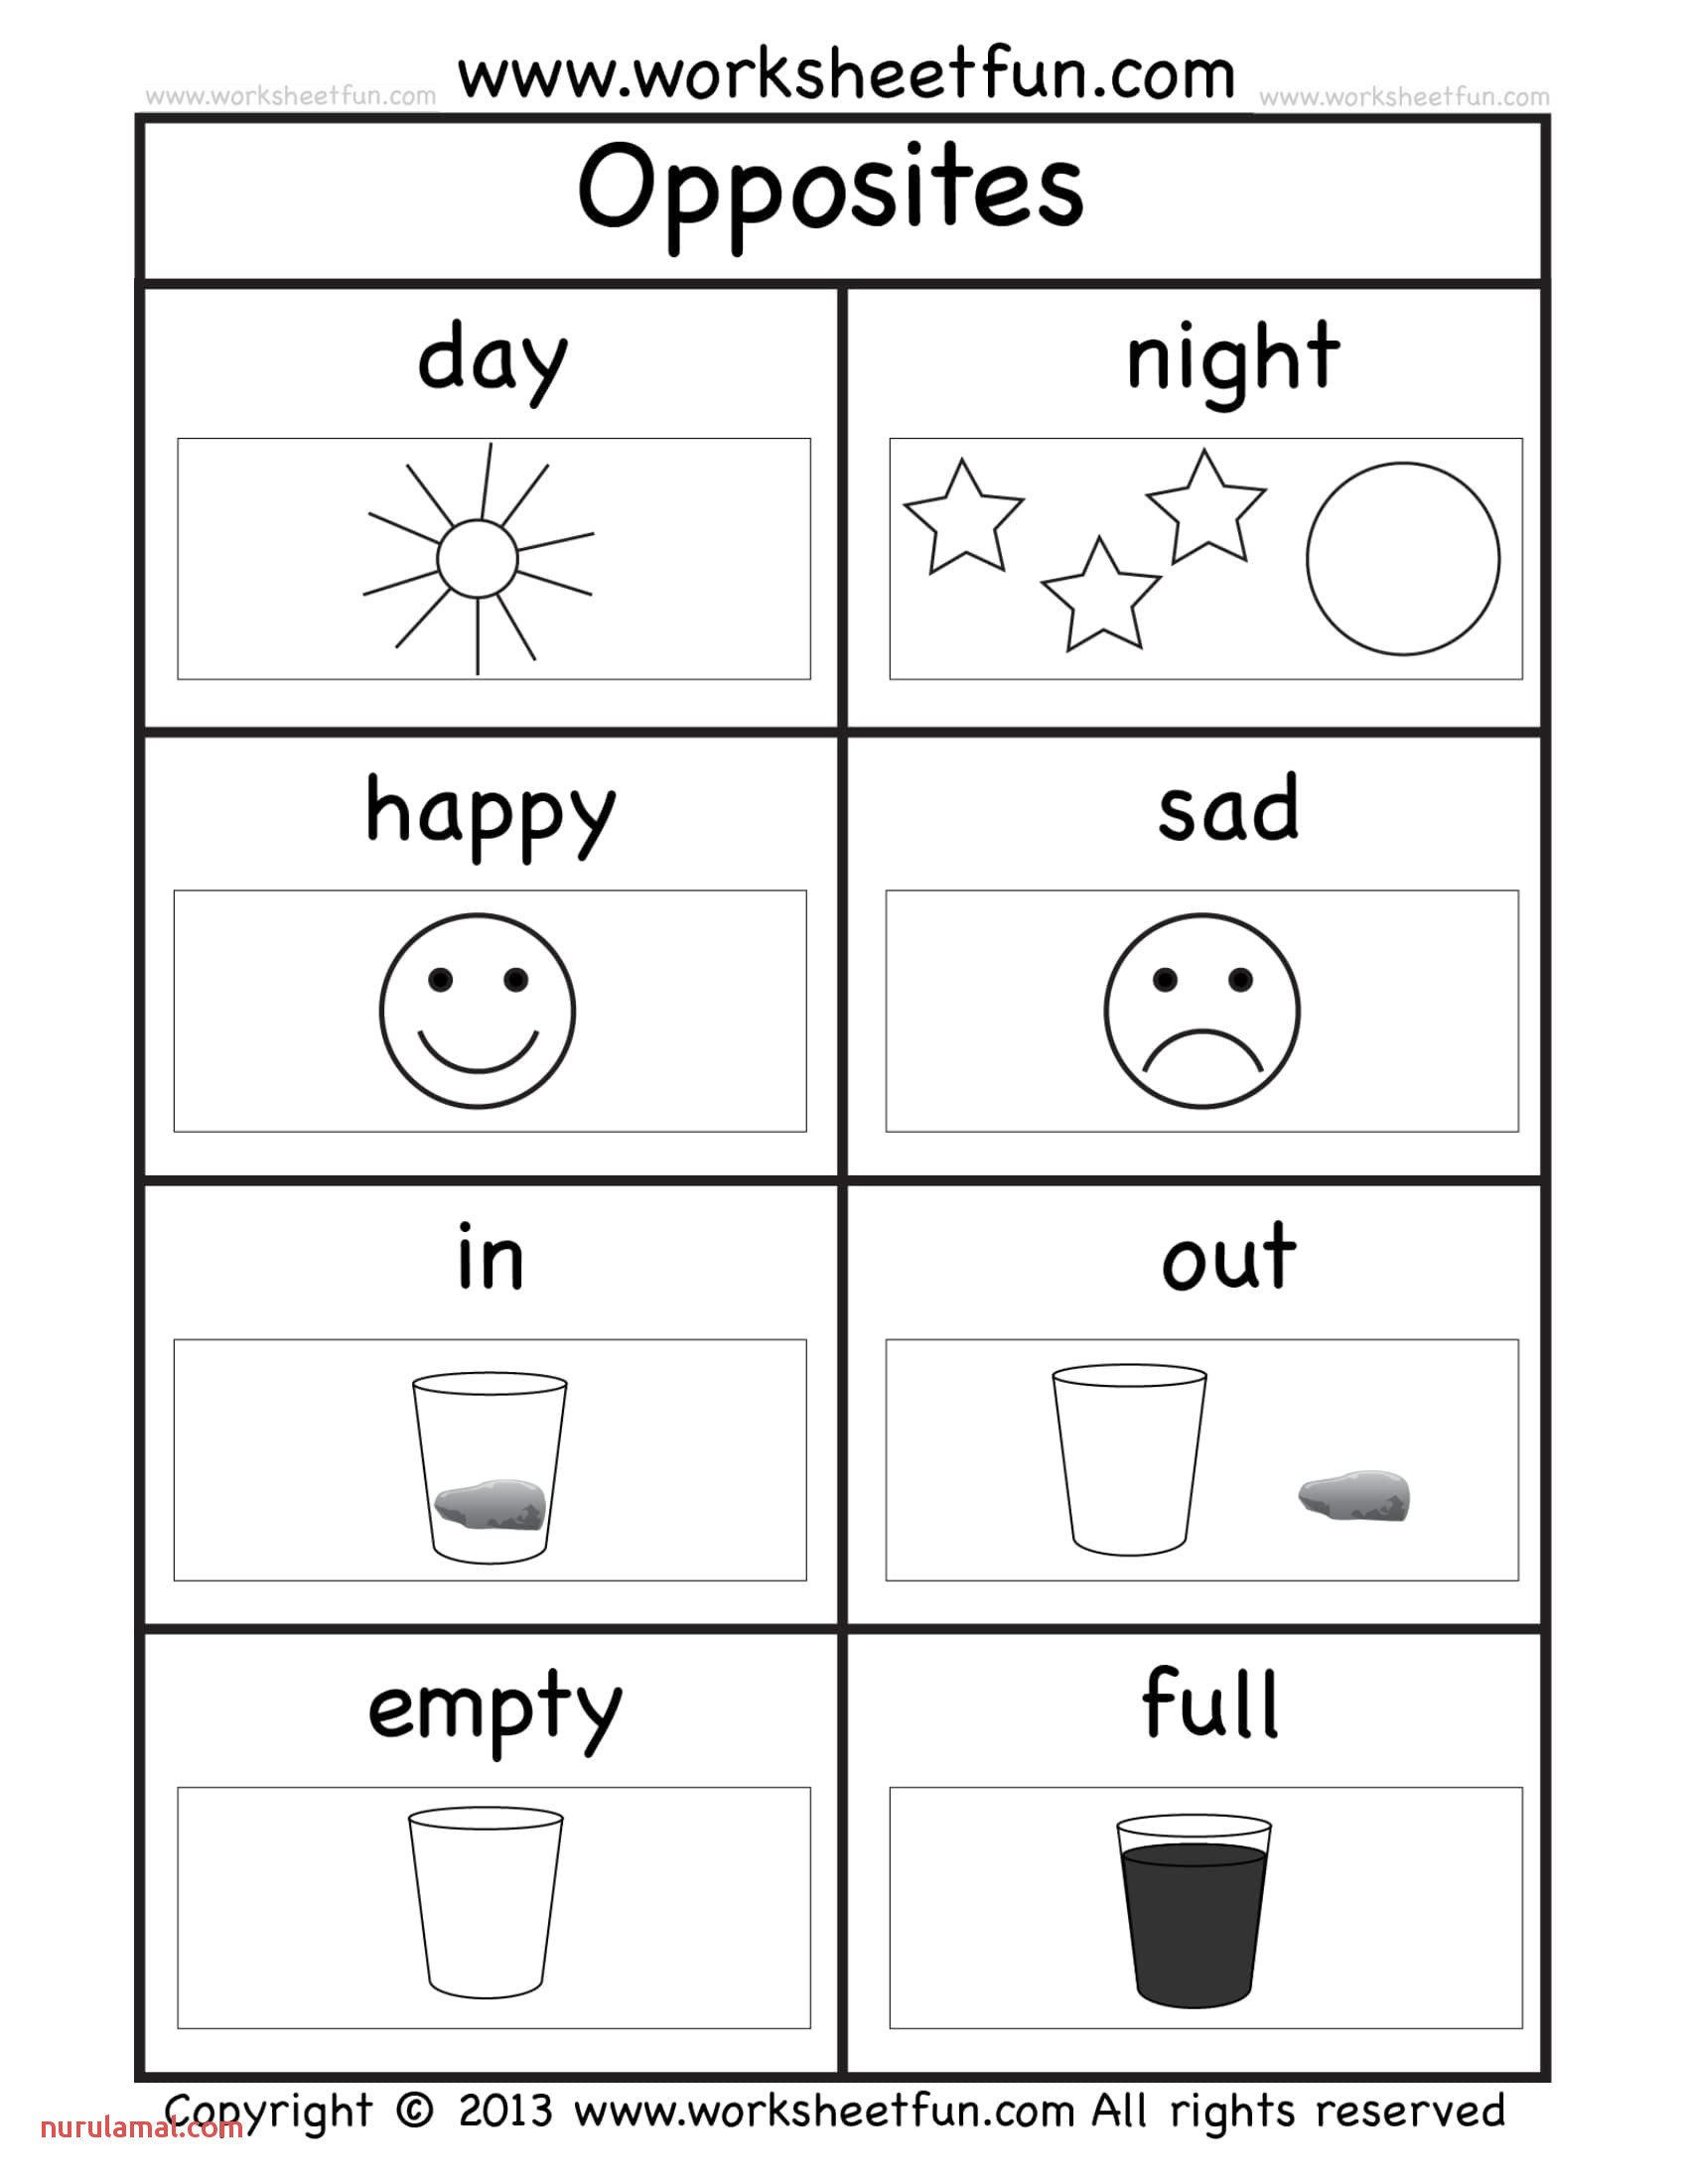 worksheet ideas freentable kindergarten worksheets reading of opposite words worksheet printable